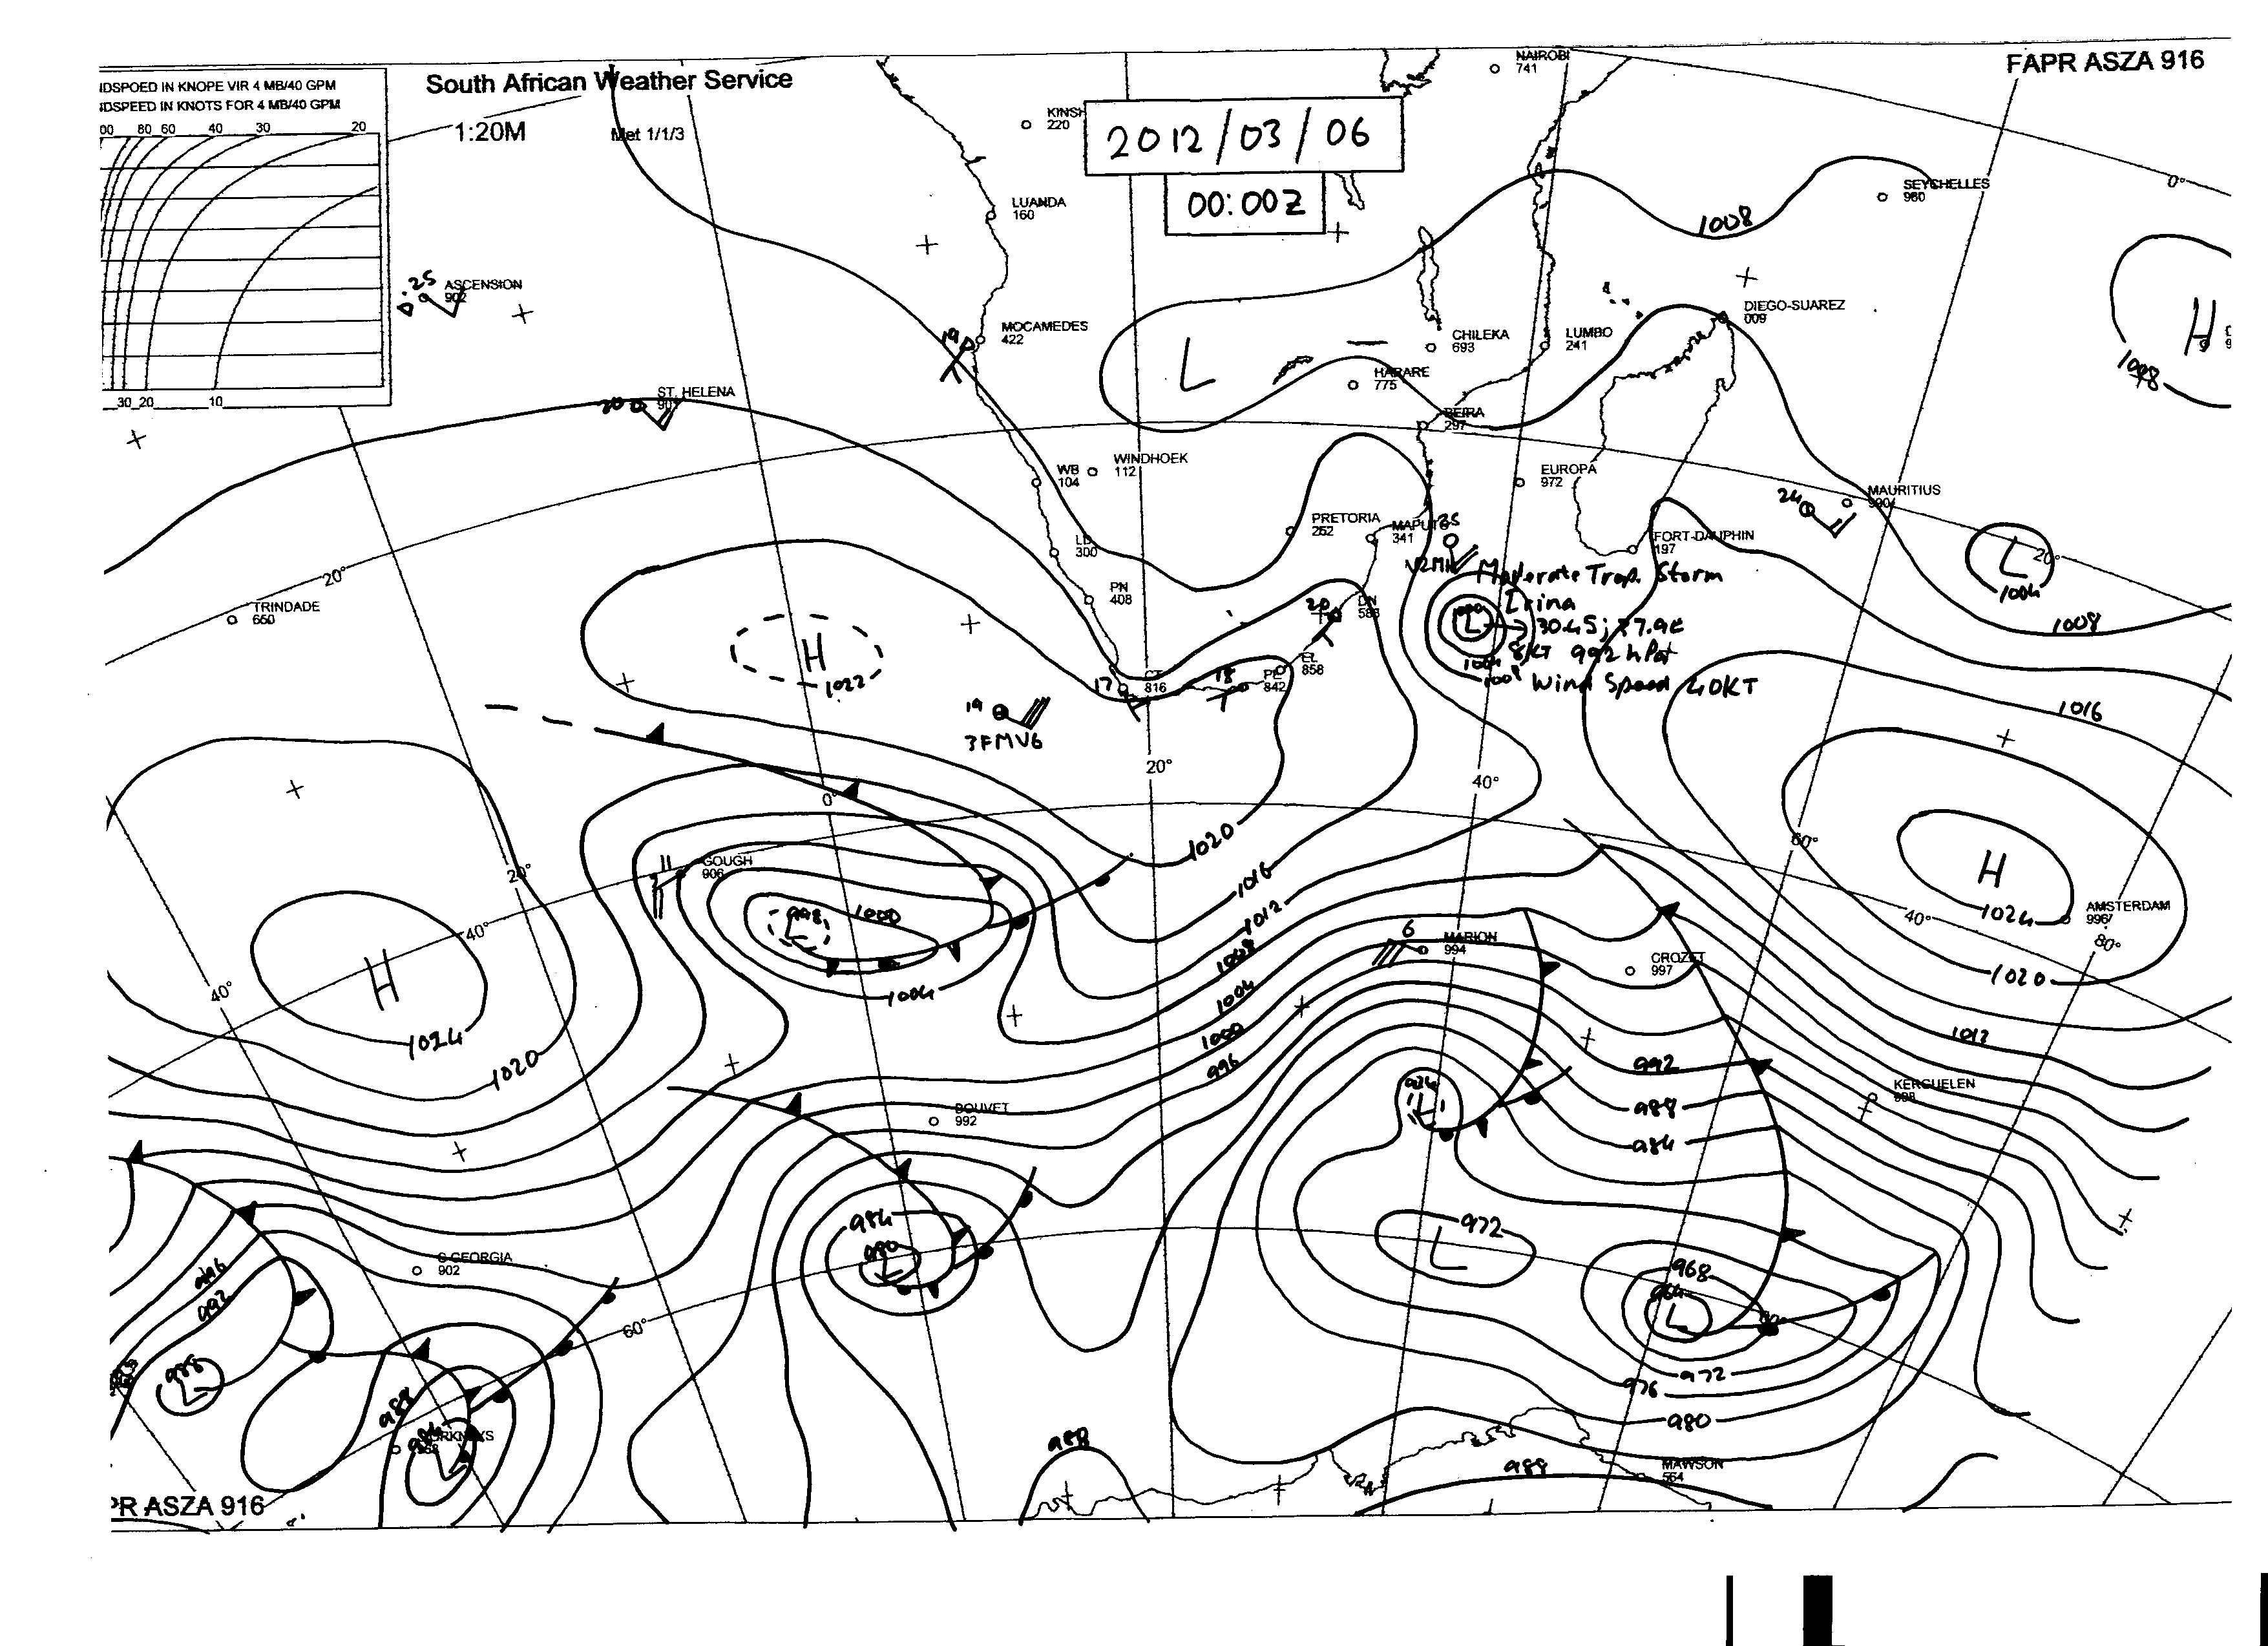 Synoptic Weather Map Of South Africa Map Of Africa